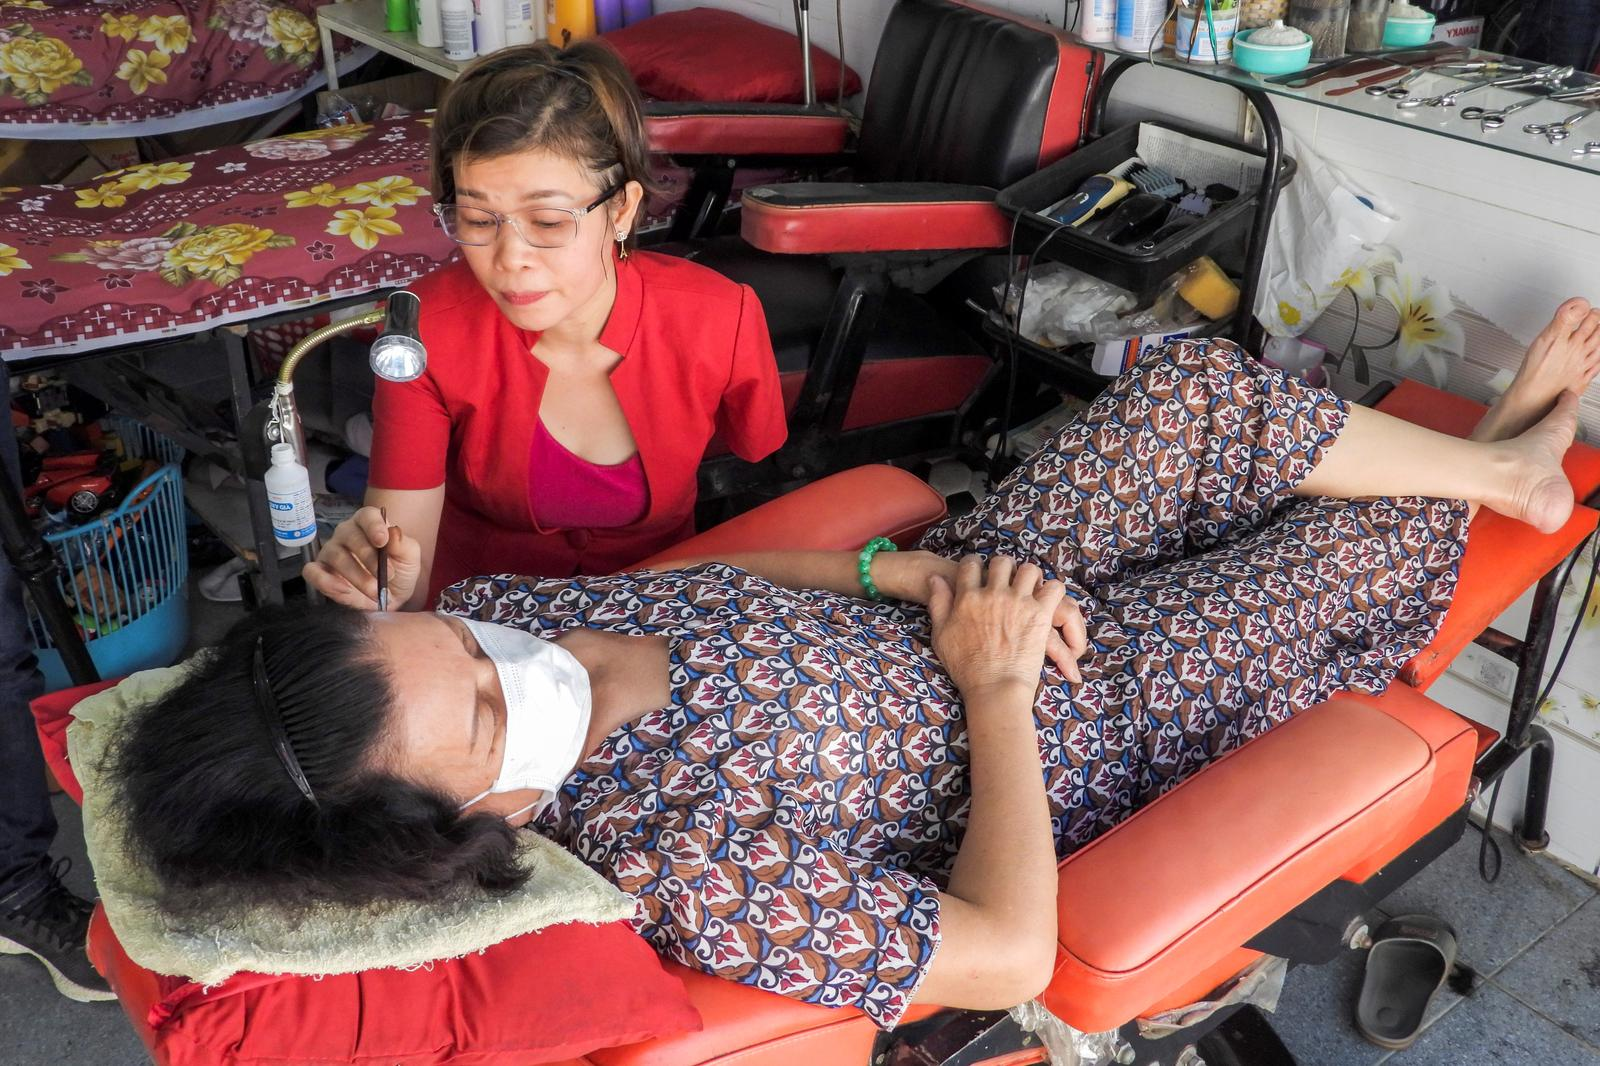 Le Thi Kim Tram, who lost her left arm in a traffic accident four years ago, works at her barbershop in Ho Chi Minh City, Vietnam March 5, 2021. Picture taken March 5, 2021. Photo: Reuters